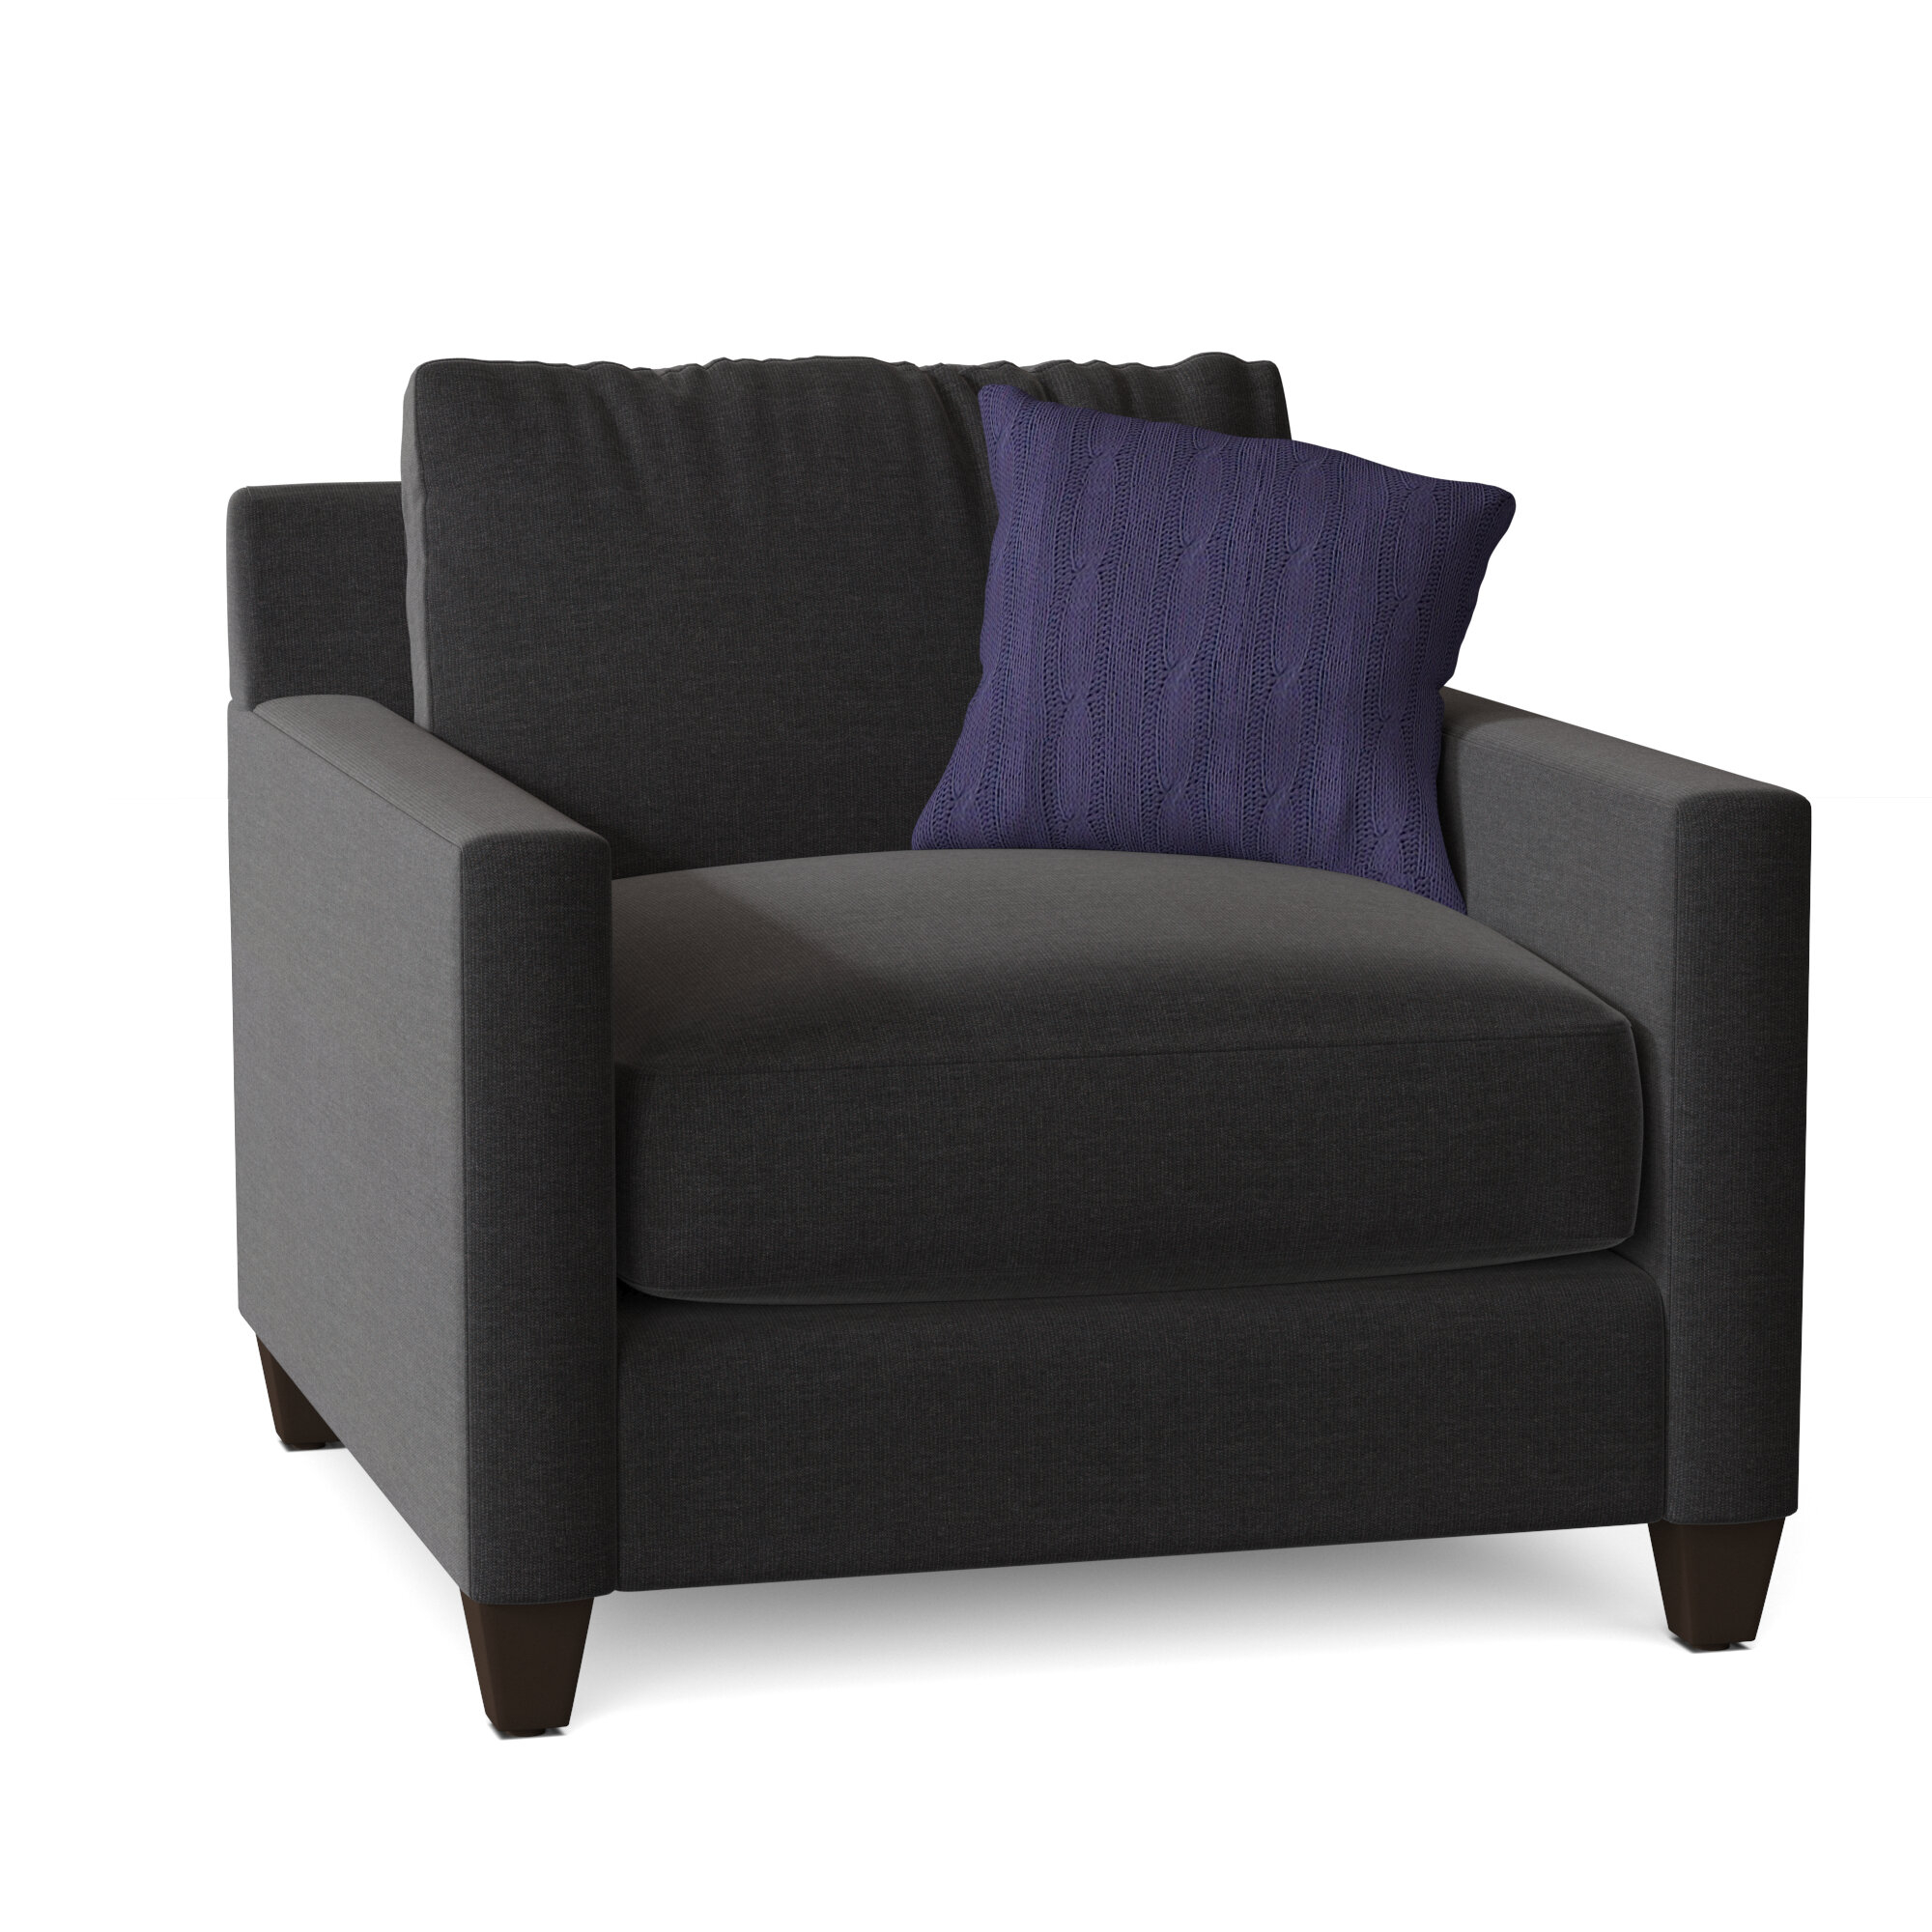 "Kerry 38"" W Polyester Blend Down Cushion Armchair Inside Polyester Blend Armchairs (View 9 of 15)"